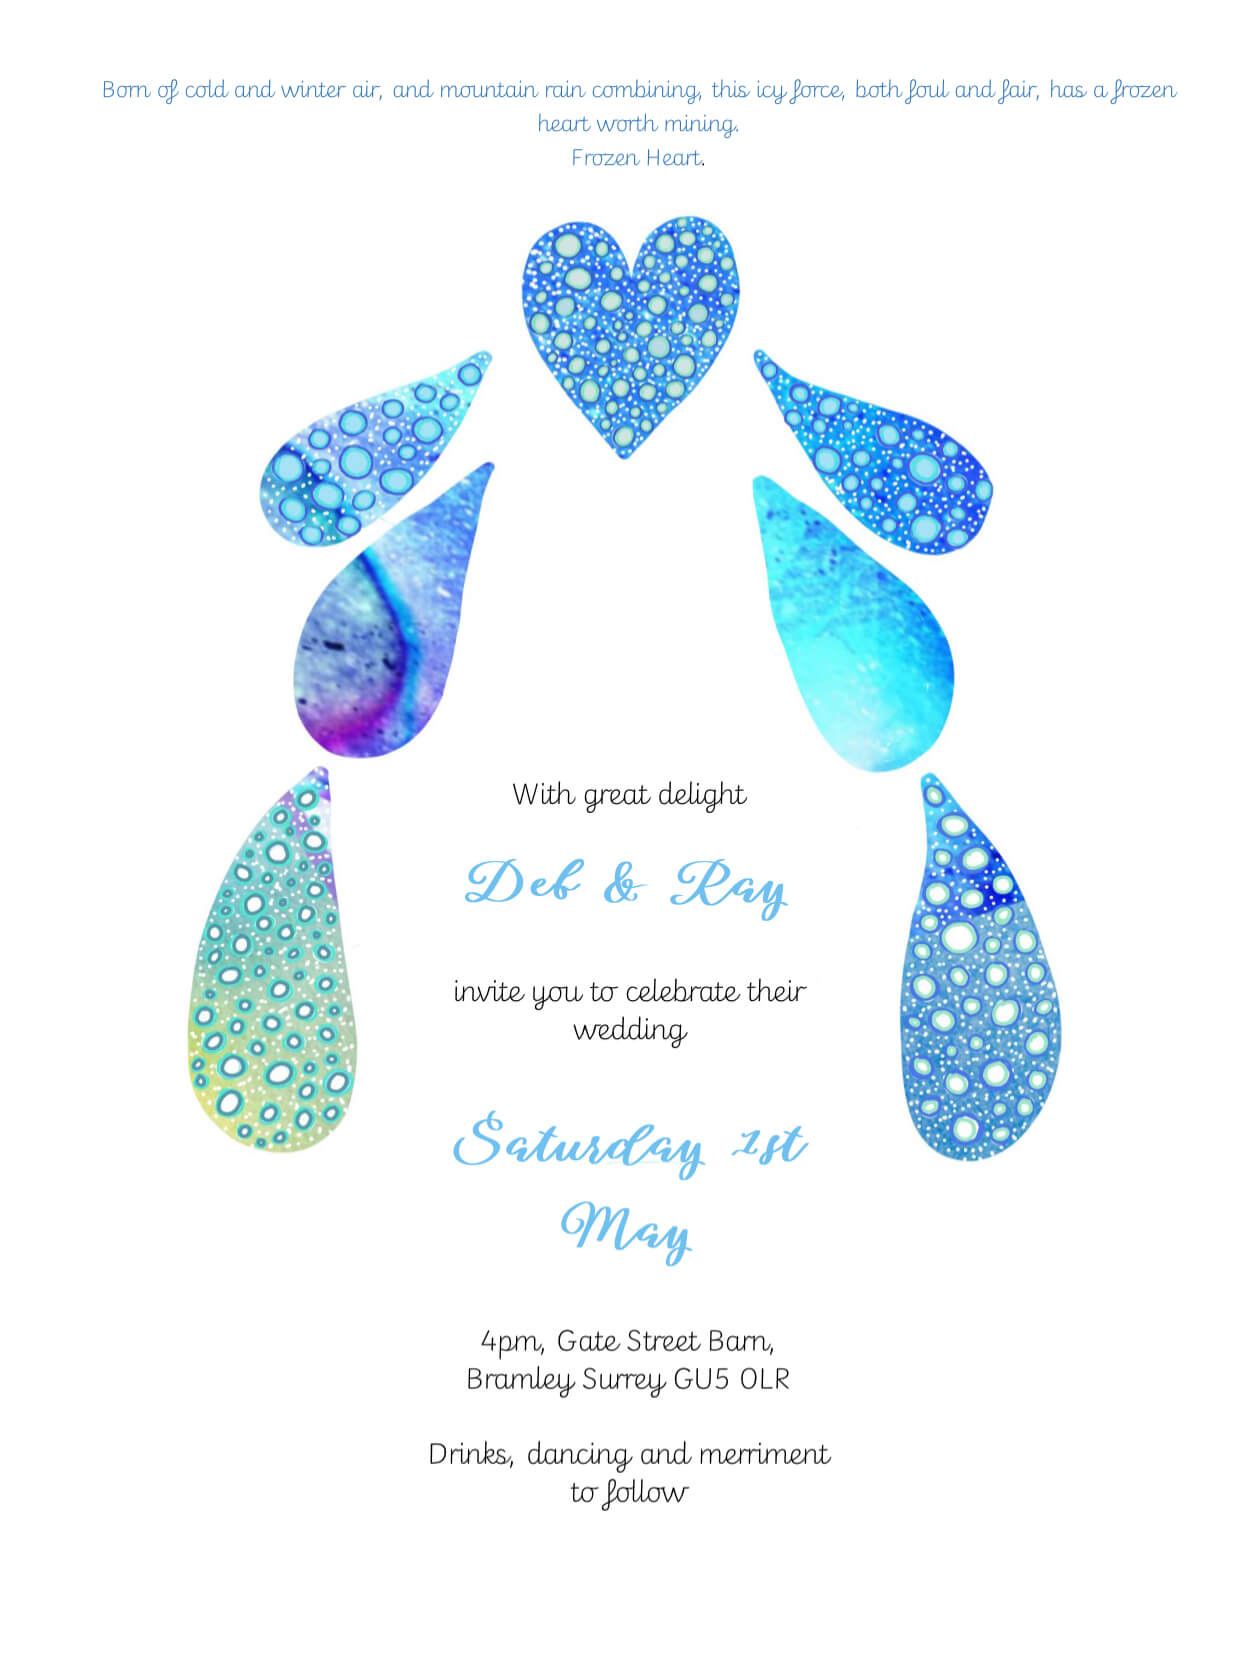 water and ice themed invitation